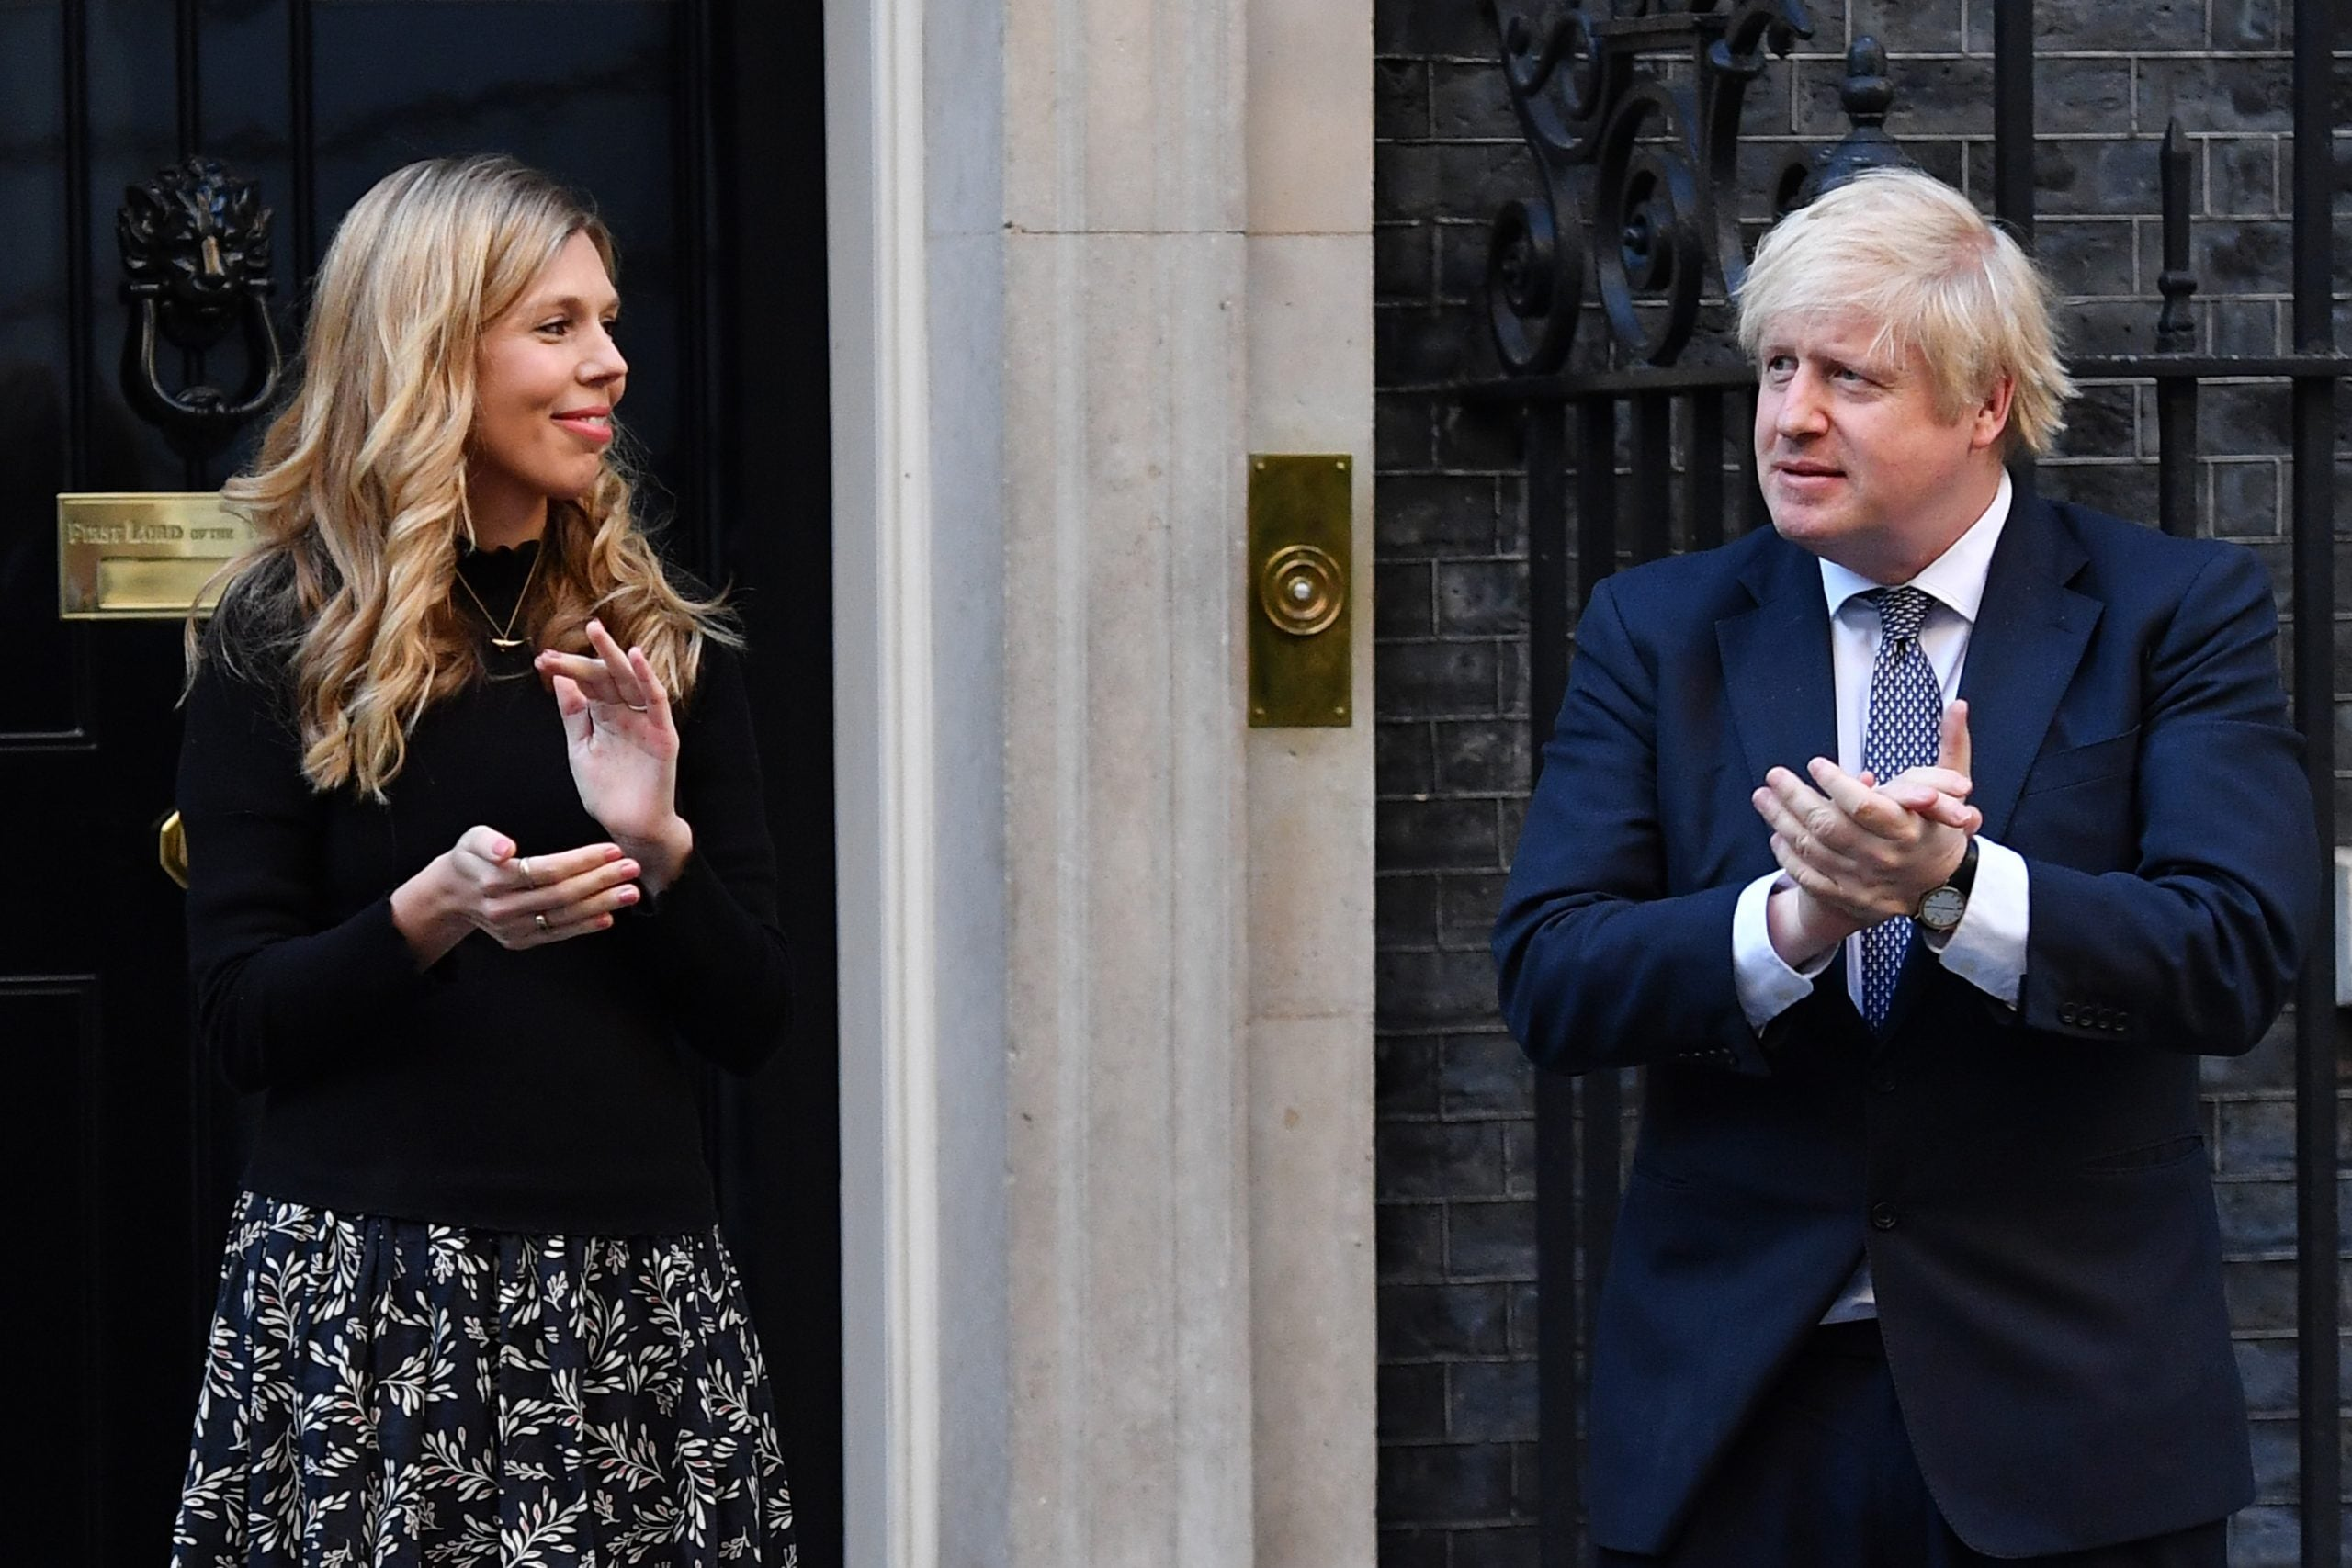 Boris Johnson's £200k refurbishment of 11 Downing Street could buy you a whole house in much of the UK